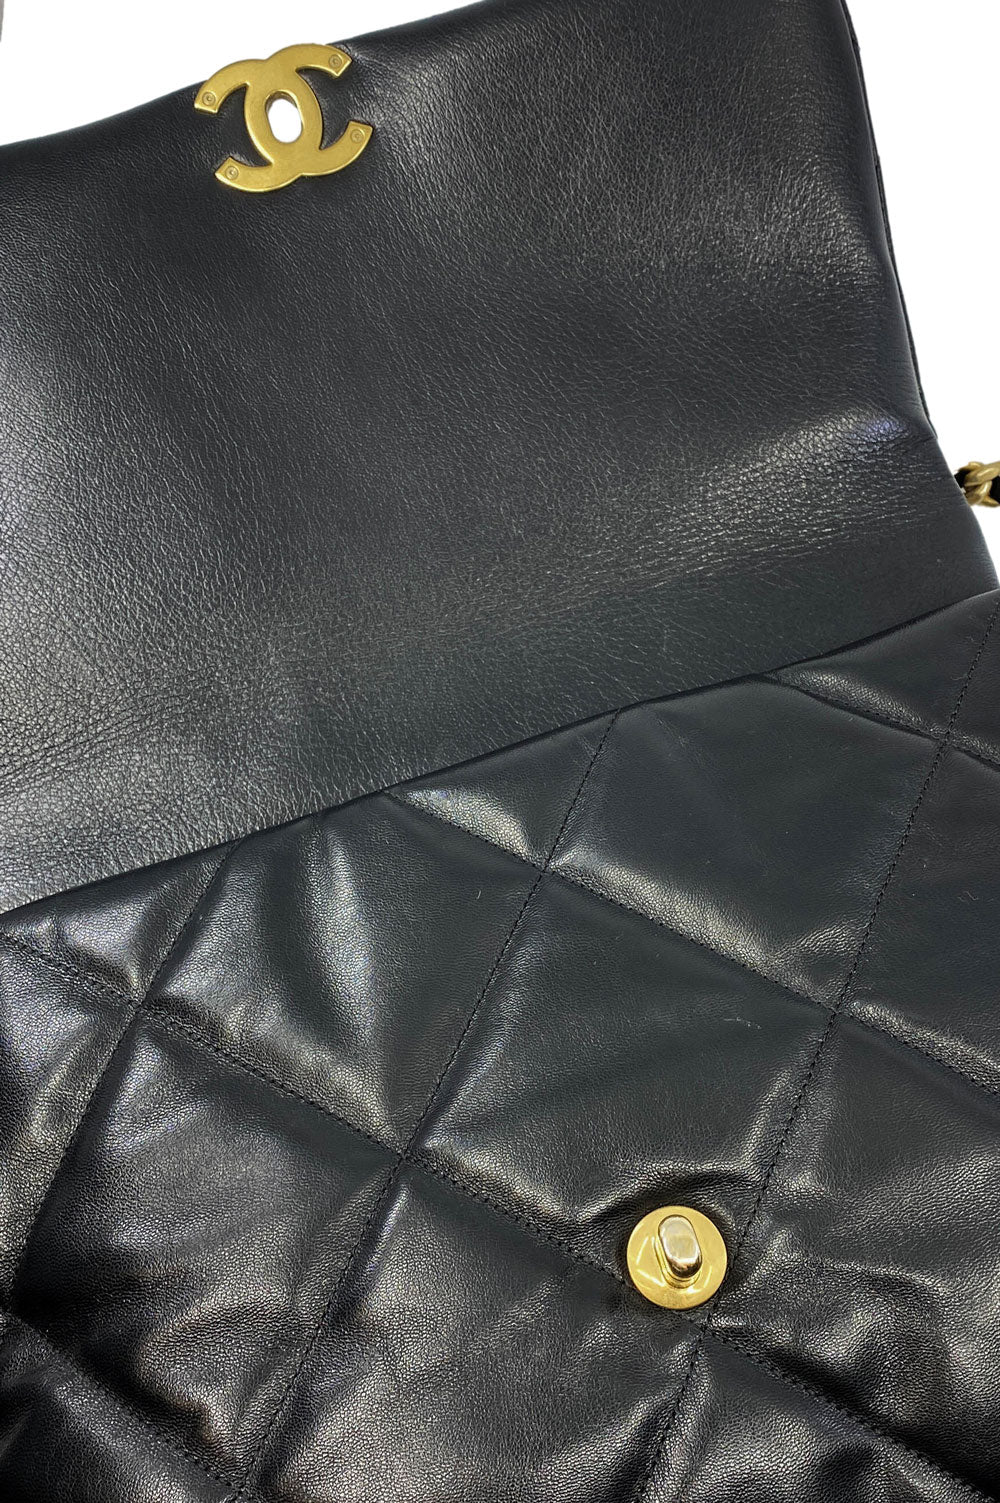 Chanel 19 Large Goatskin Black